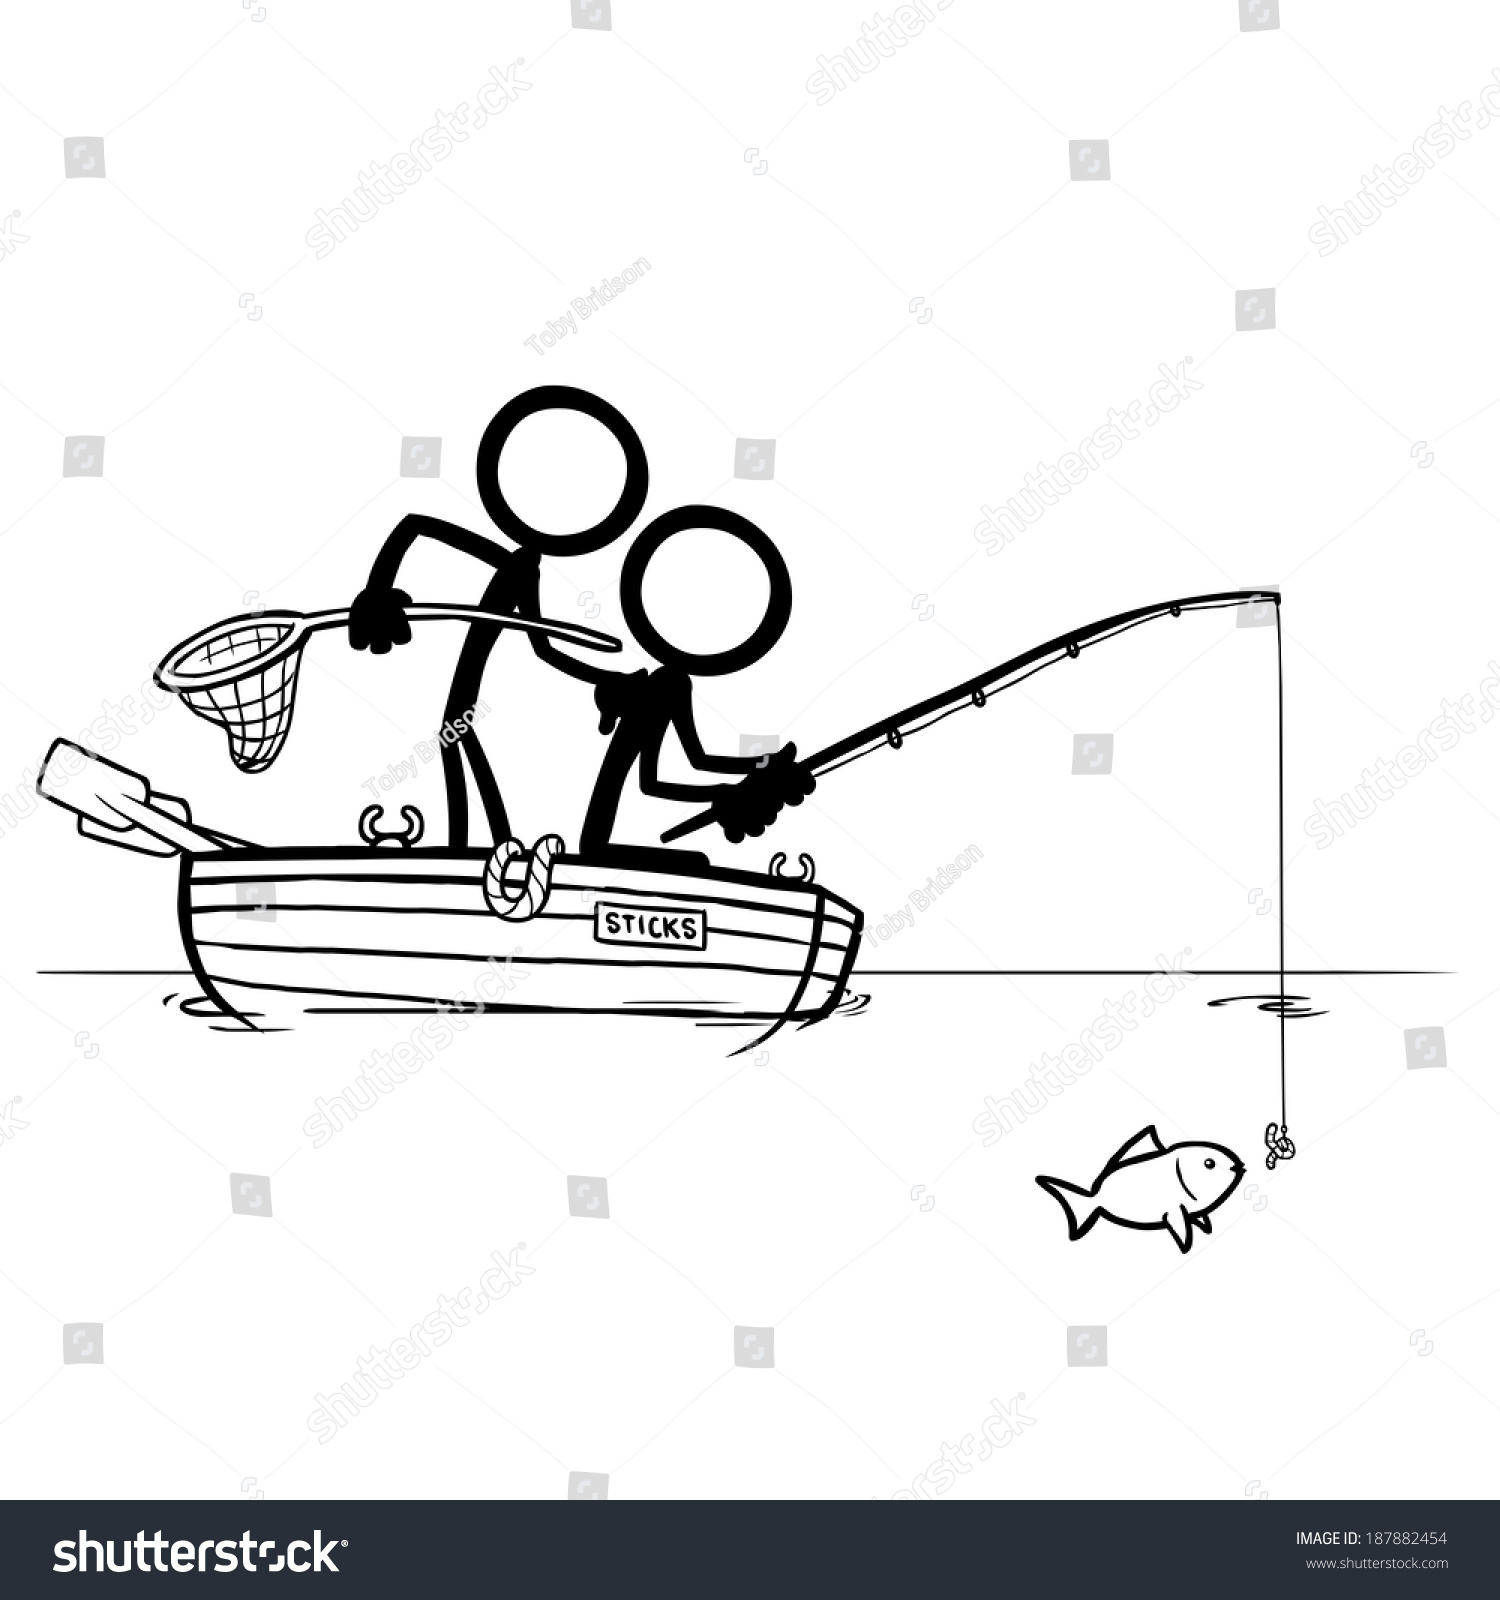 Stick Figures Fishing Stock Vector 187882454 - Shutterstock